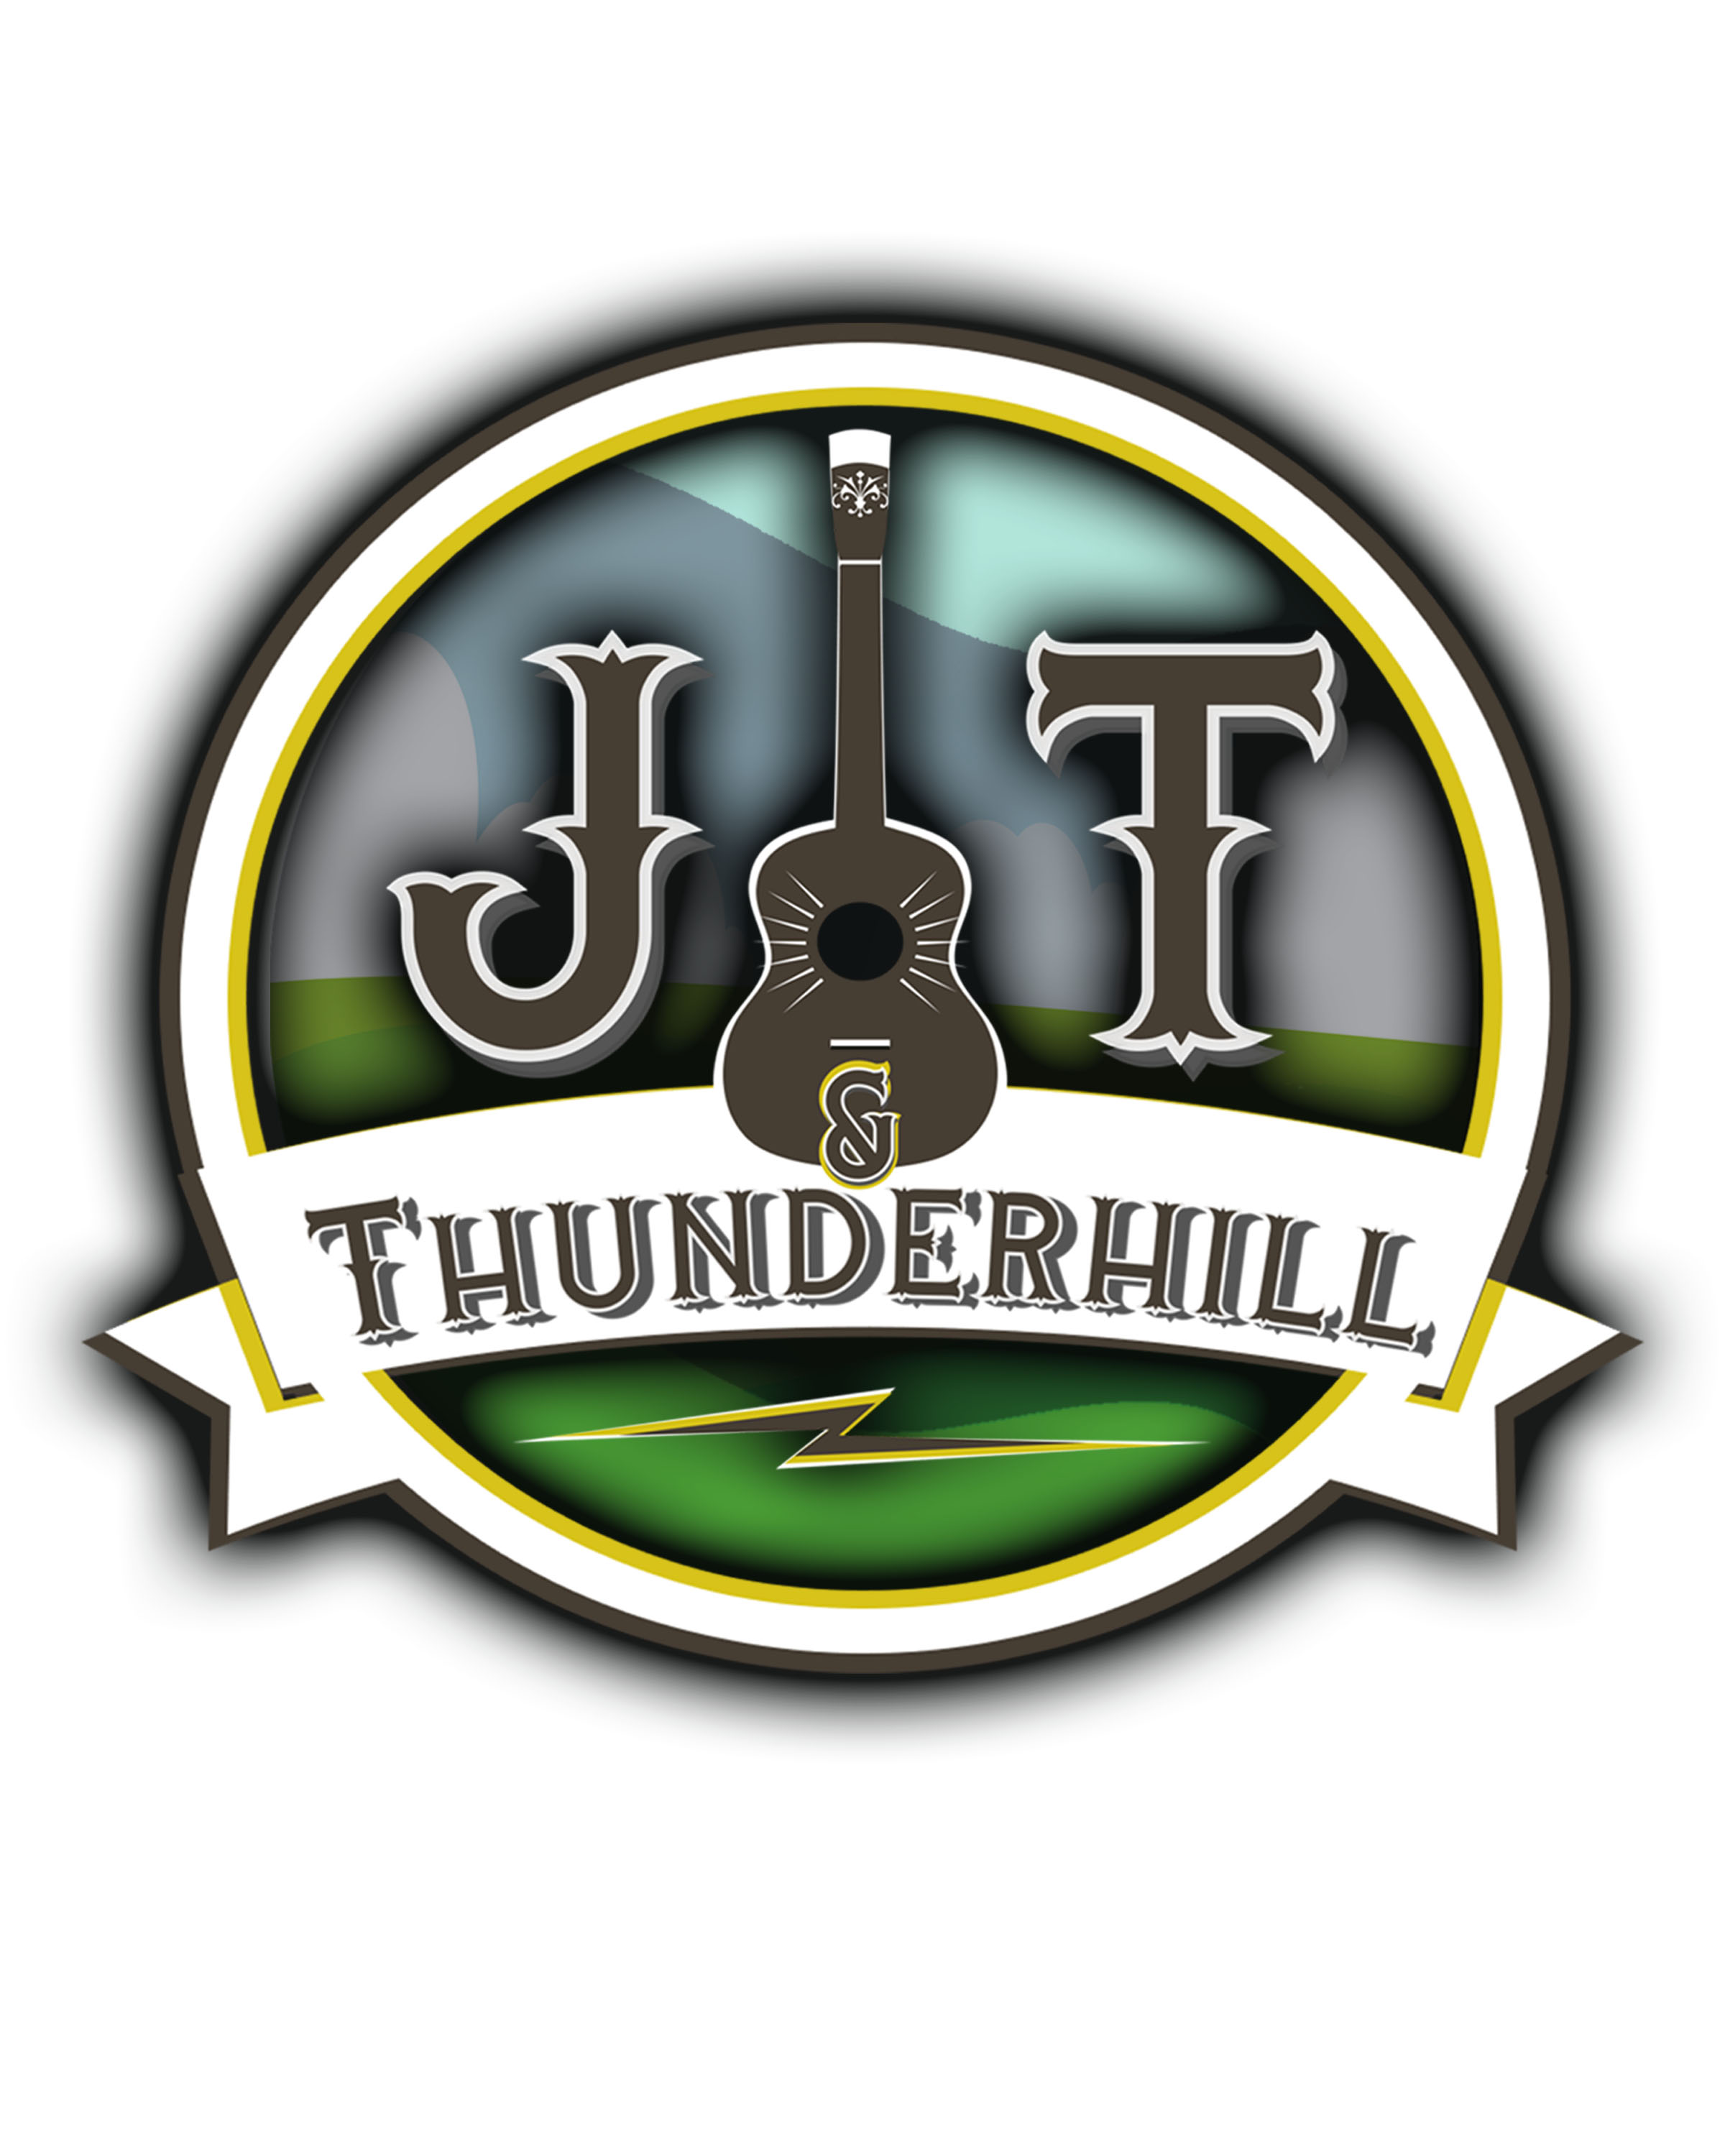 JT and Thunder Hill